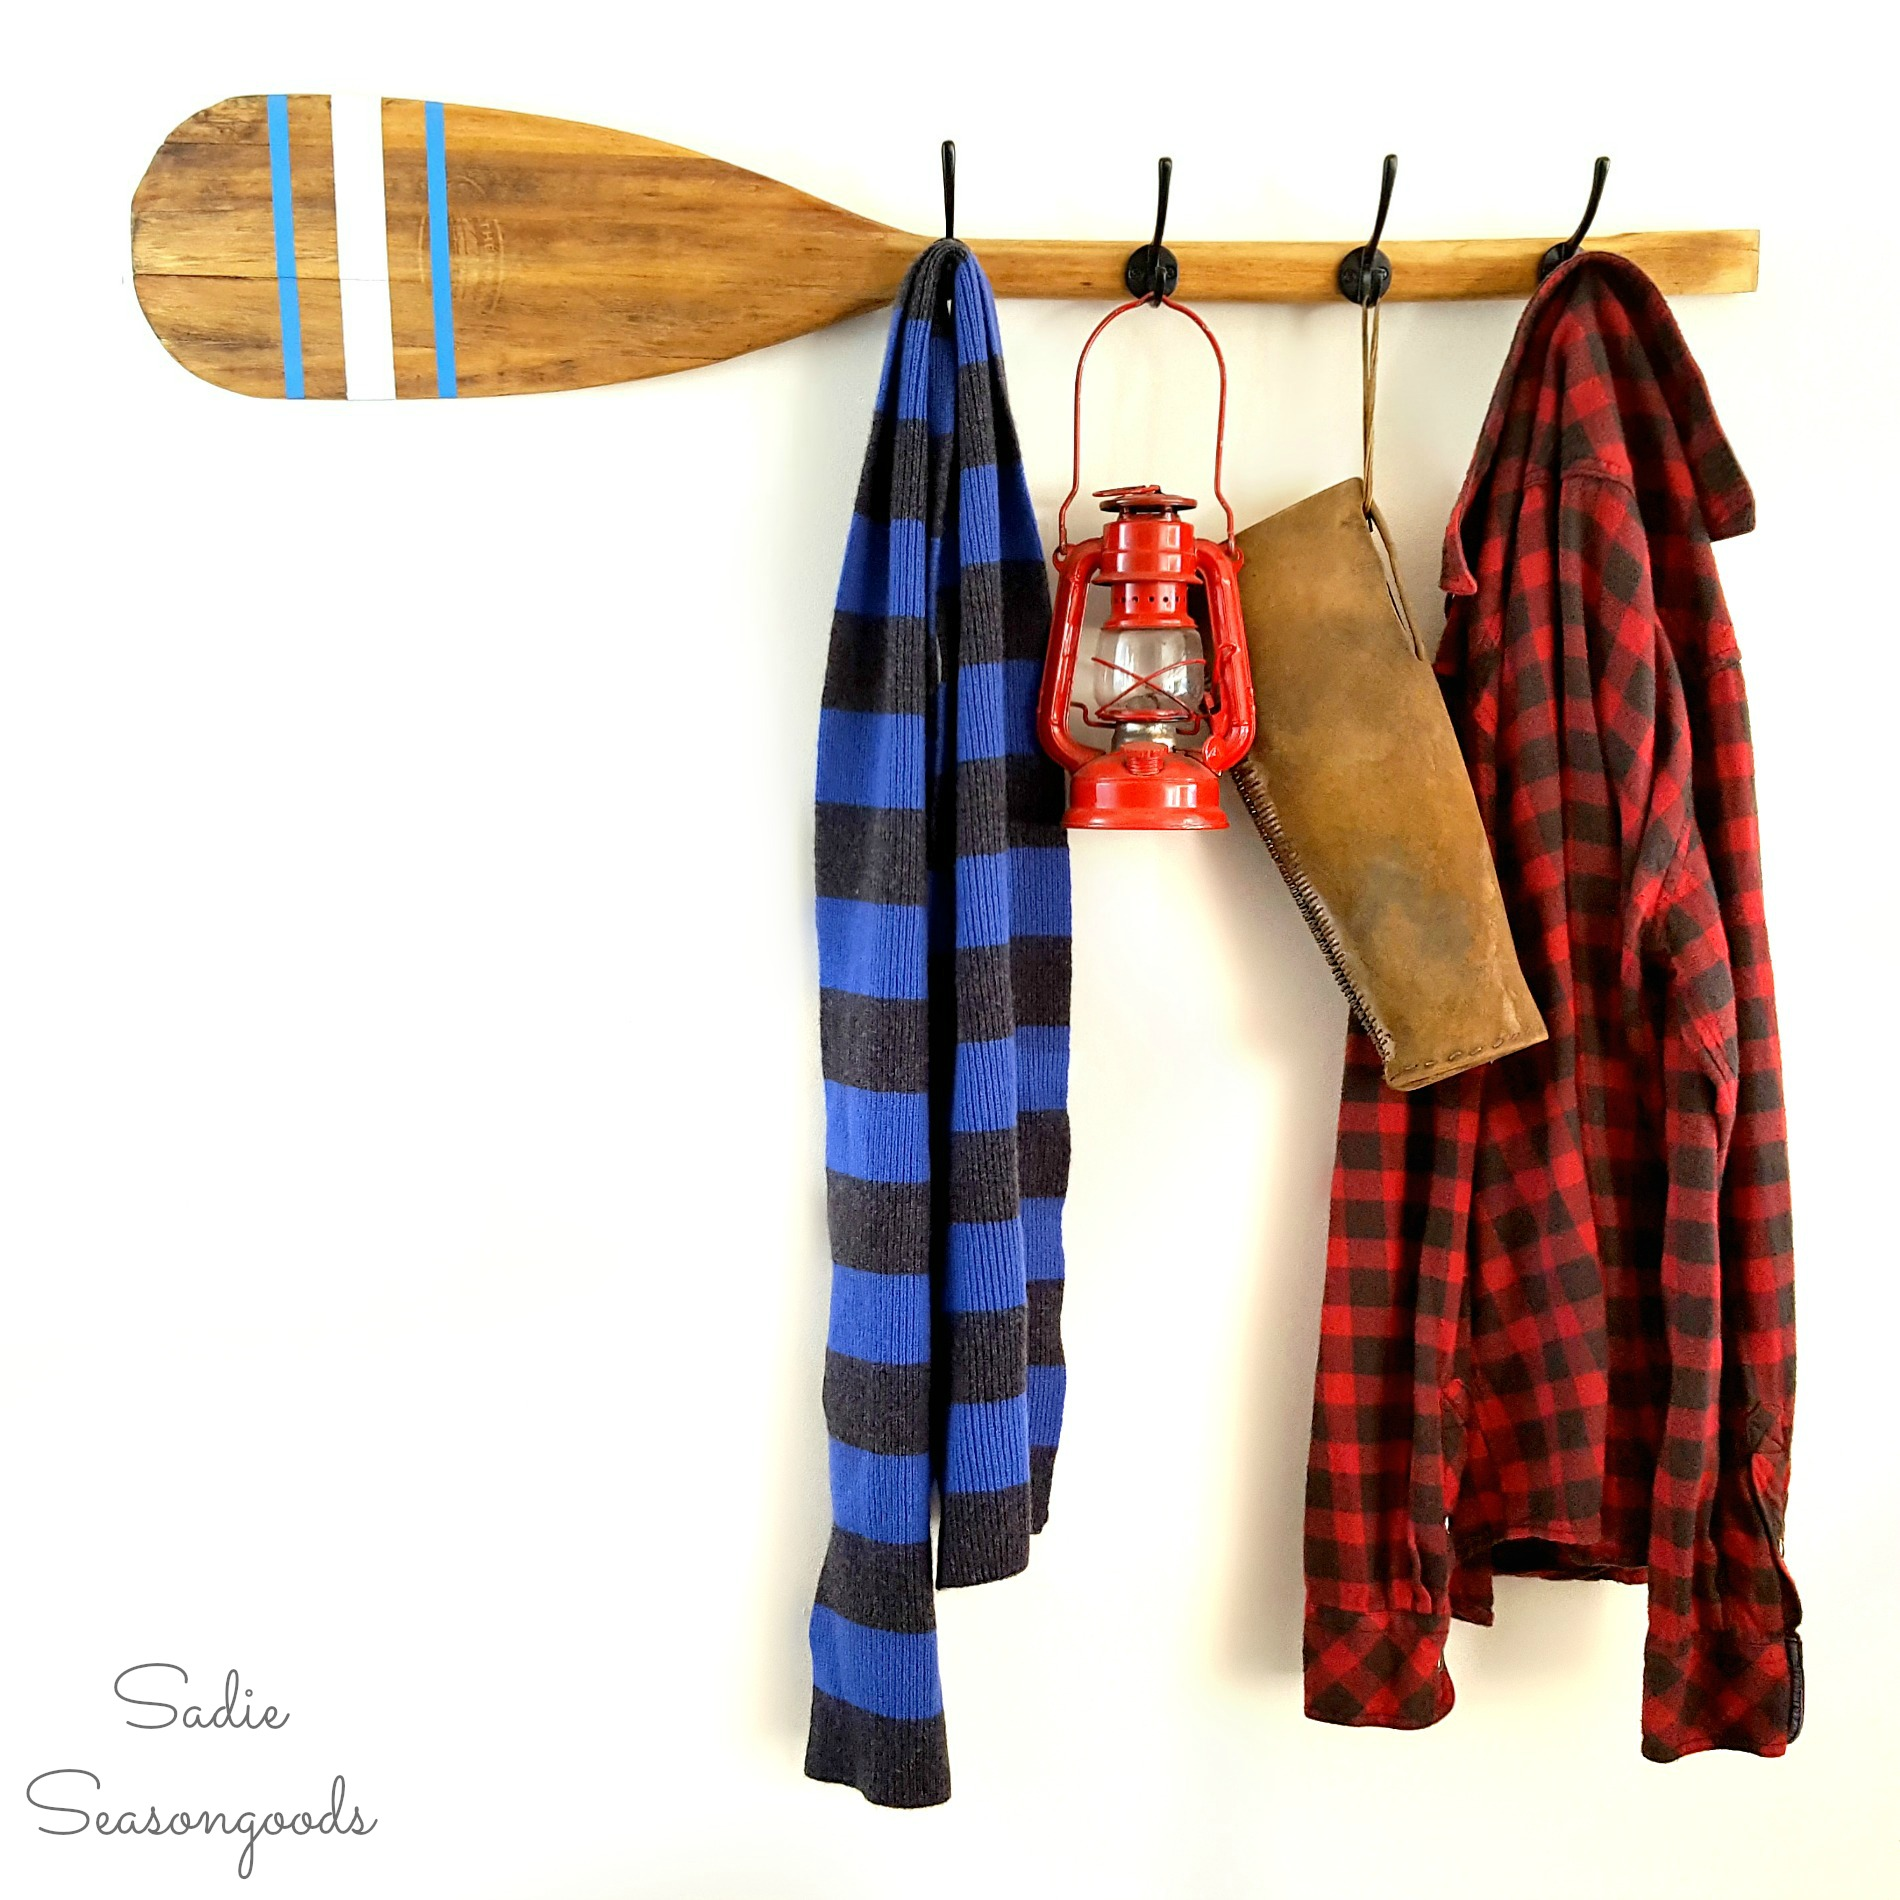 Waste Not Wednesday Week 36 Vintage Oar Coat Rack from Sadie Seasongoods